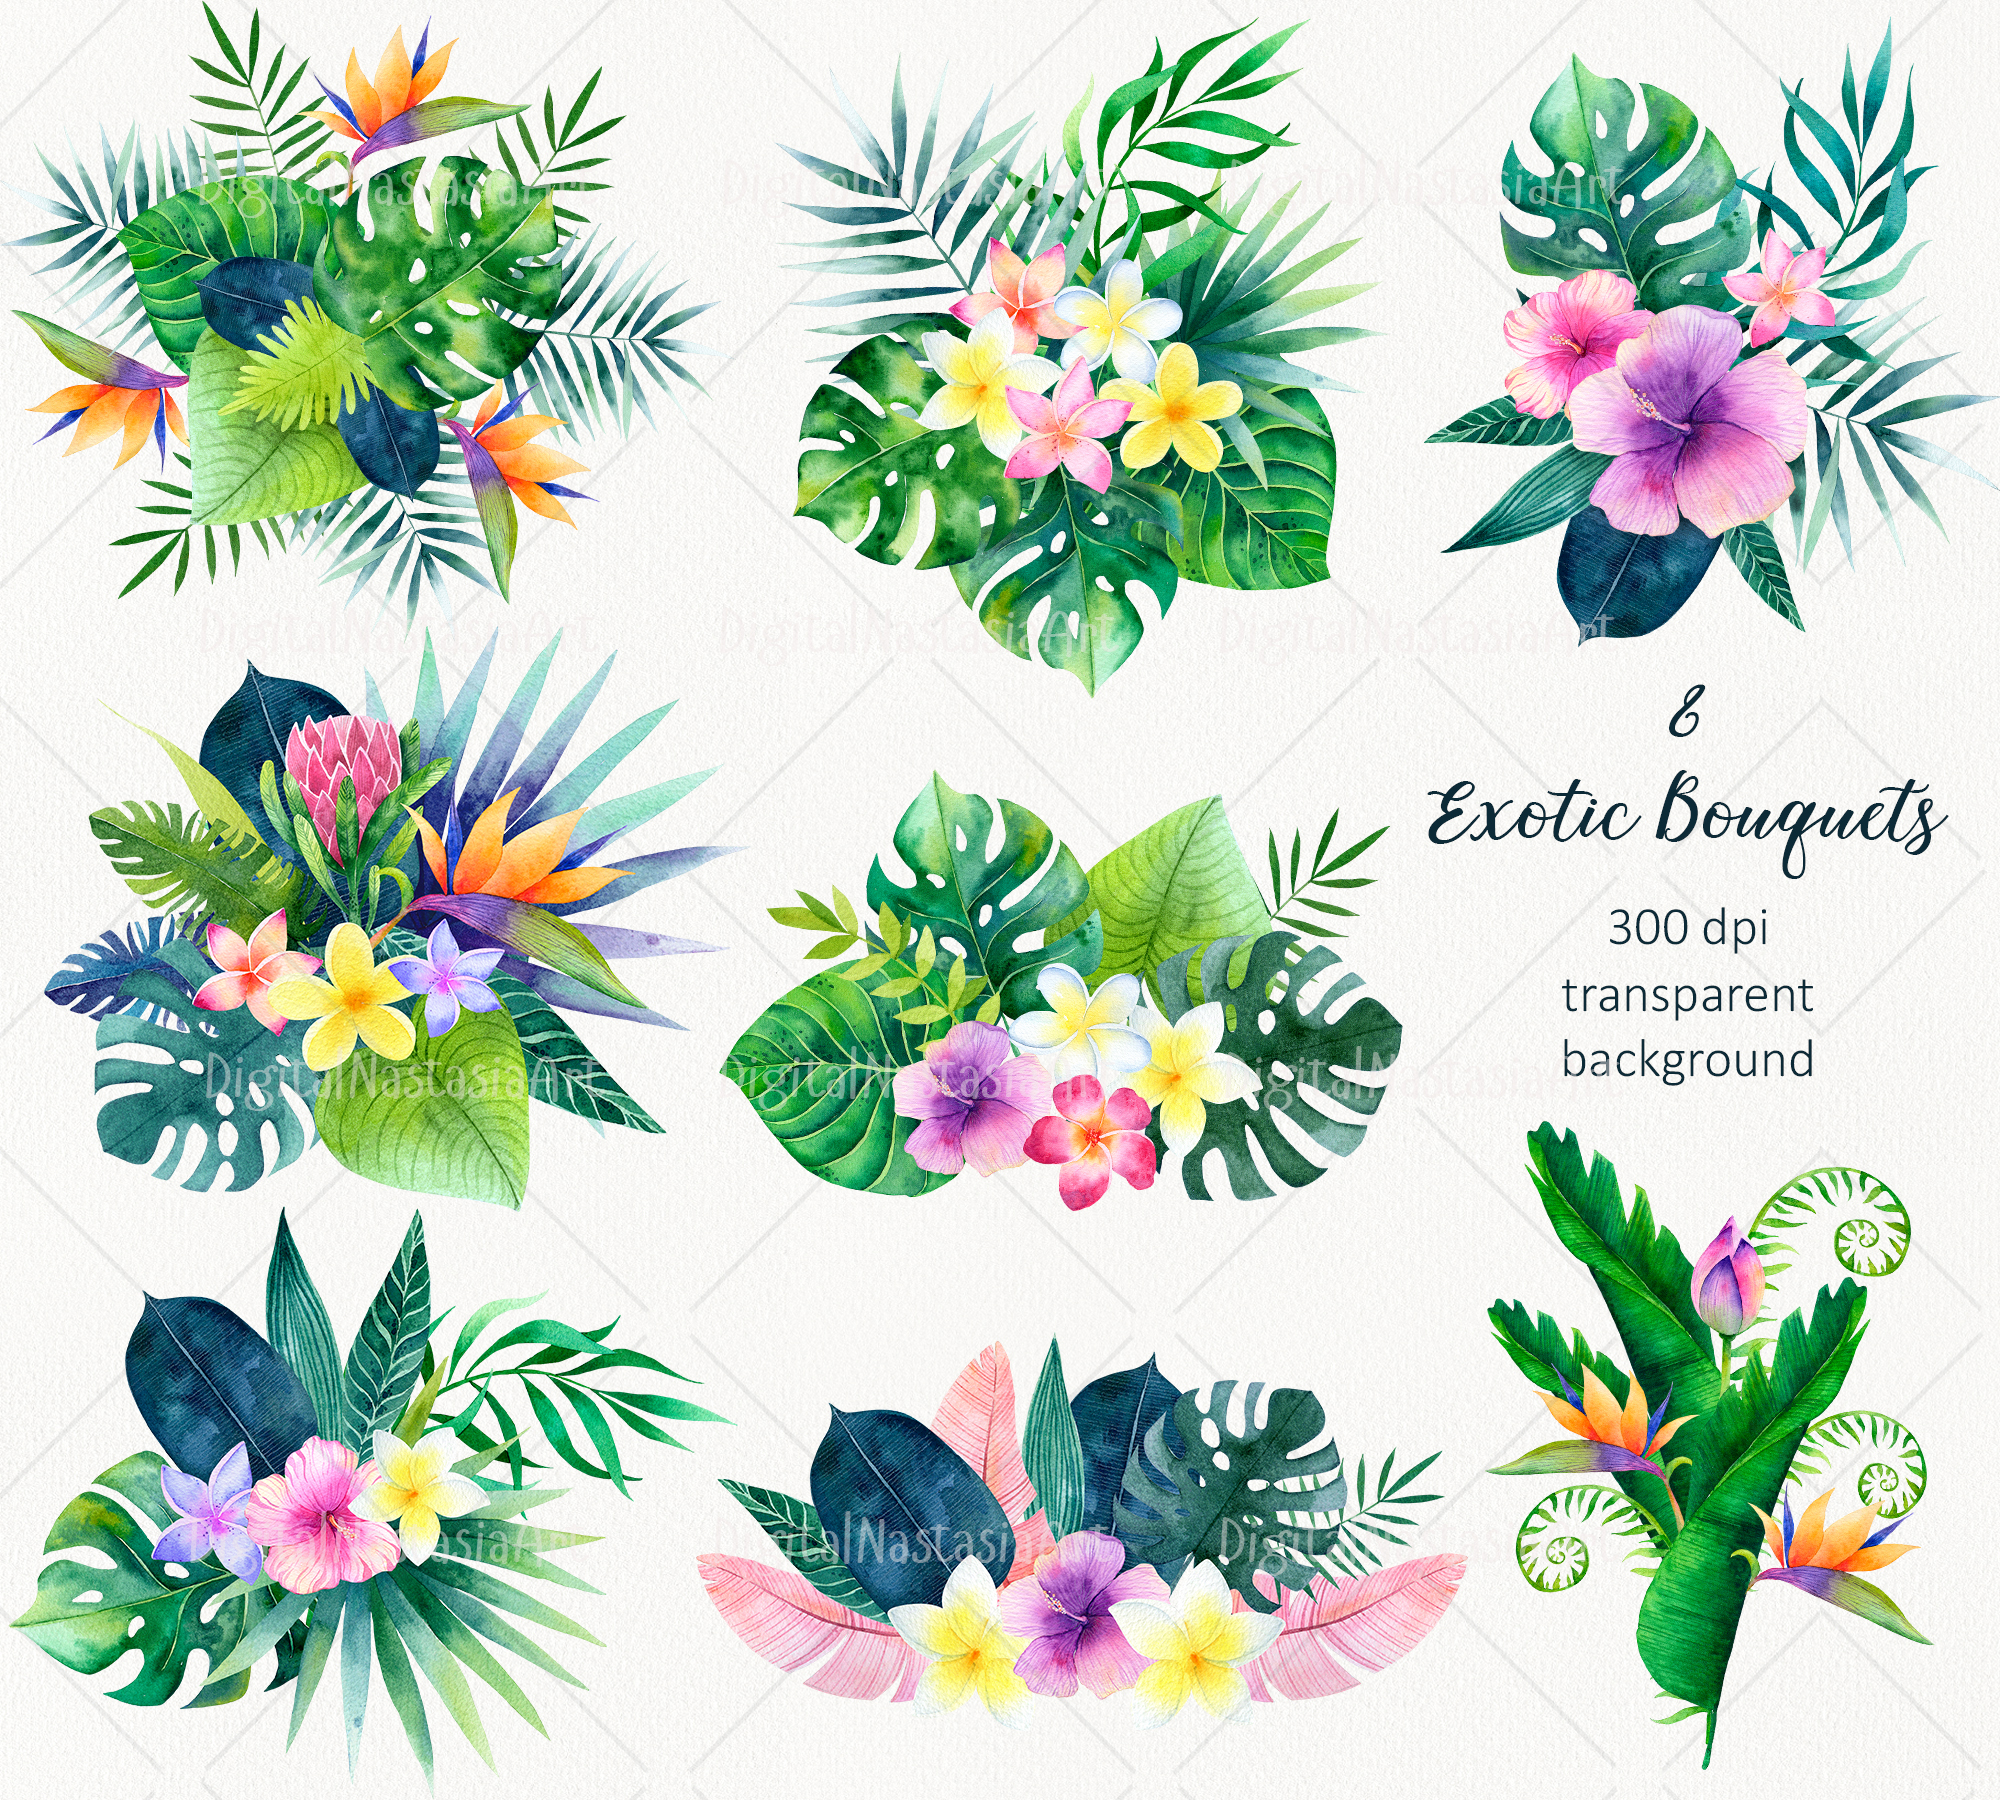 Hawaii Watercolor Bouquets. Tropical Flowers (293133 ...